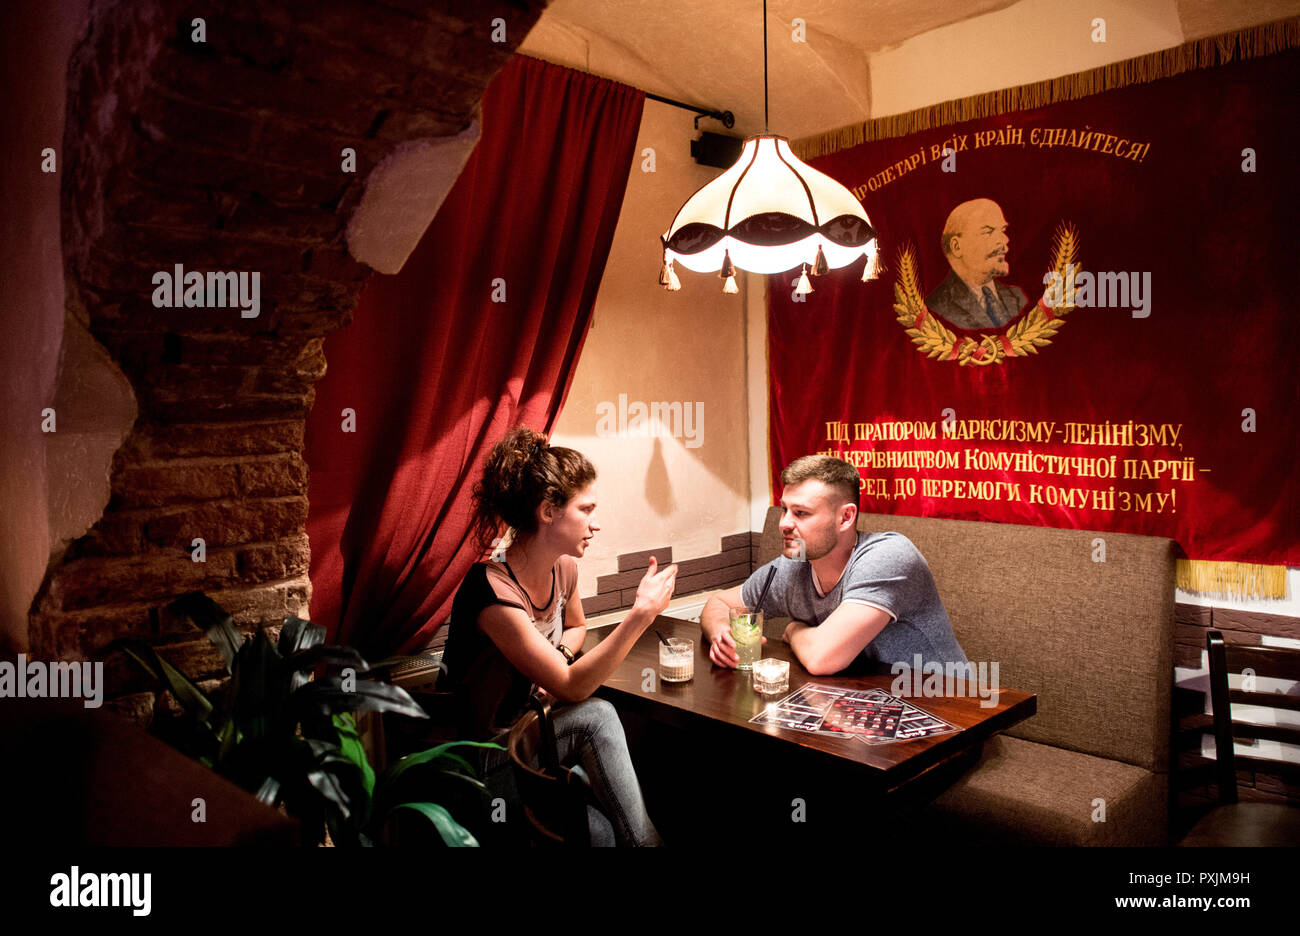 Hanover, Germany. 07th Apr, 2018. Guests chat in the KGB bar, while in the background hangs a flag showing the former Soviet head of government Vladimir Lenin. With many Soviet relics, the bar in the city centre of Hanover is reminiscent of the former USSR. Credit: Hauke-Christian Dittrich/dpa/Alamy Live News - Stock Image